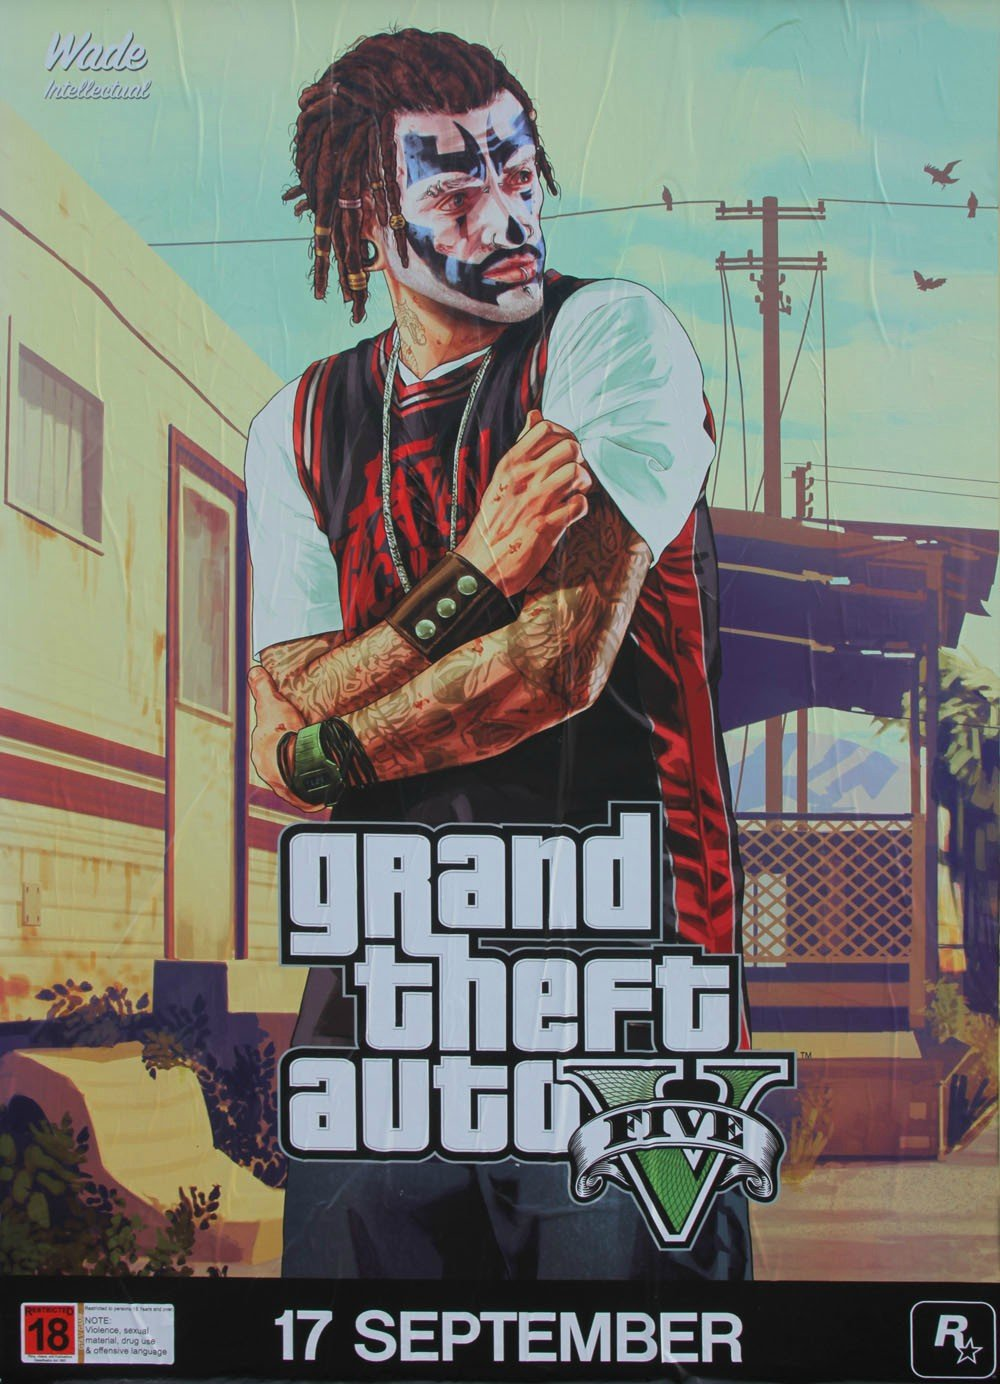 GTA 5 Posters Introduce New Characters #28781